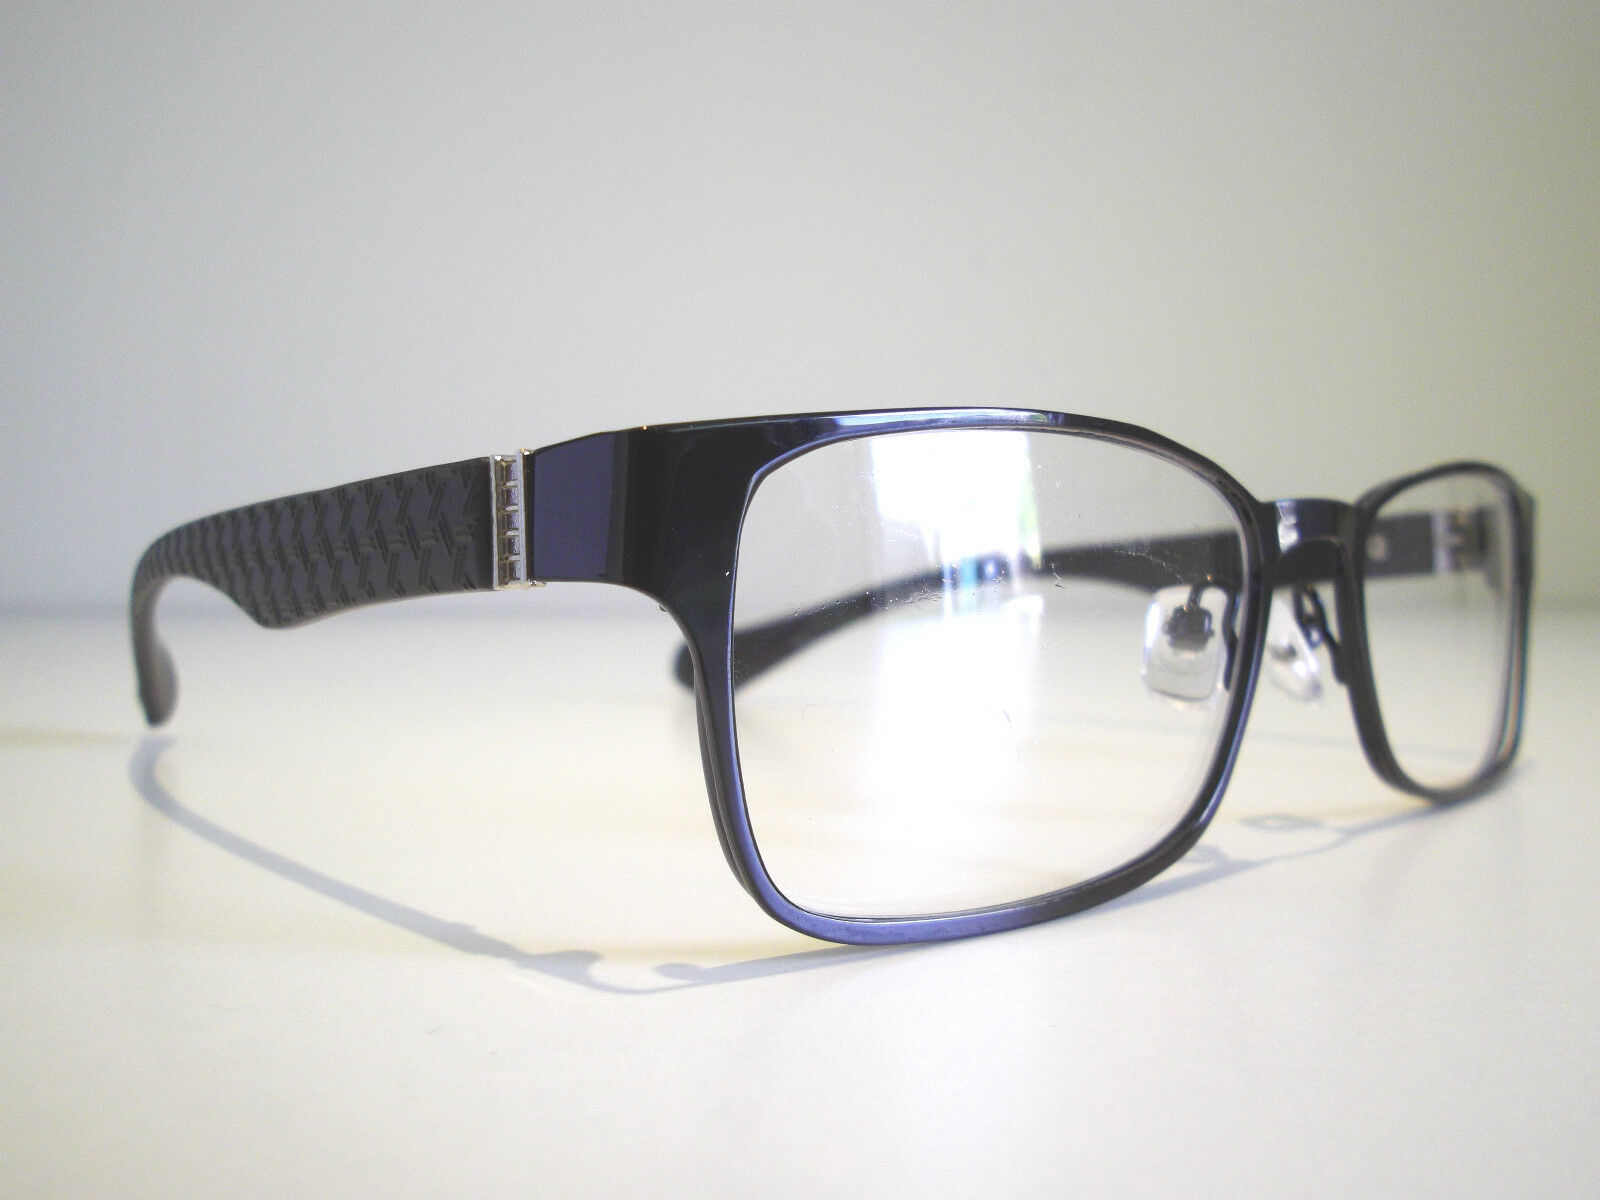 http://thumbs2.picclick.com/d/w1600/pict/301663851565_/New-ladies-optical-eyeglasses-designer-spectacles-for-prescription.jpg